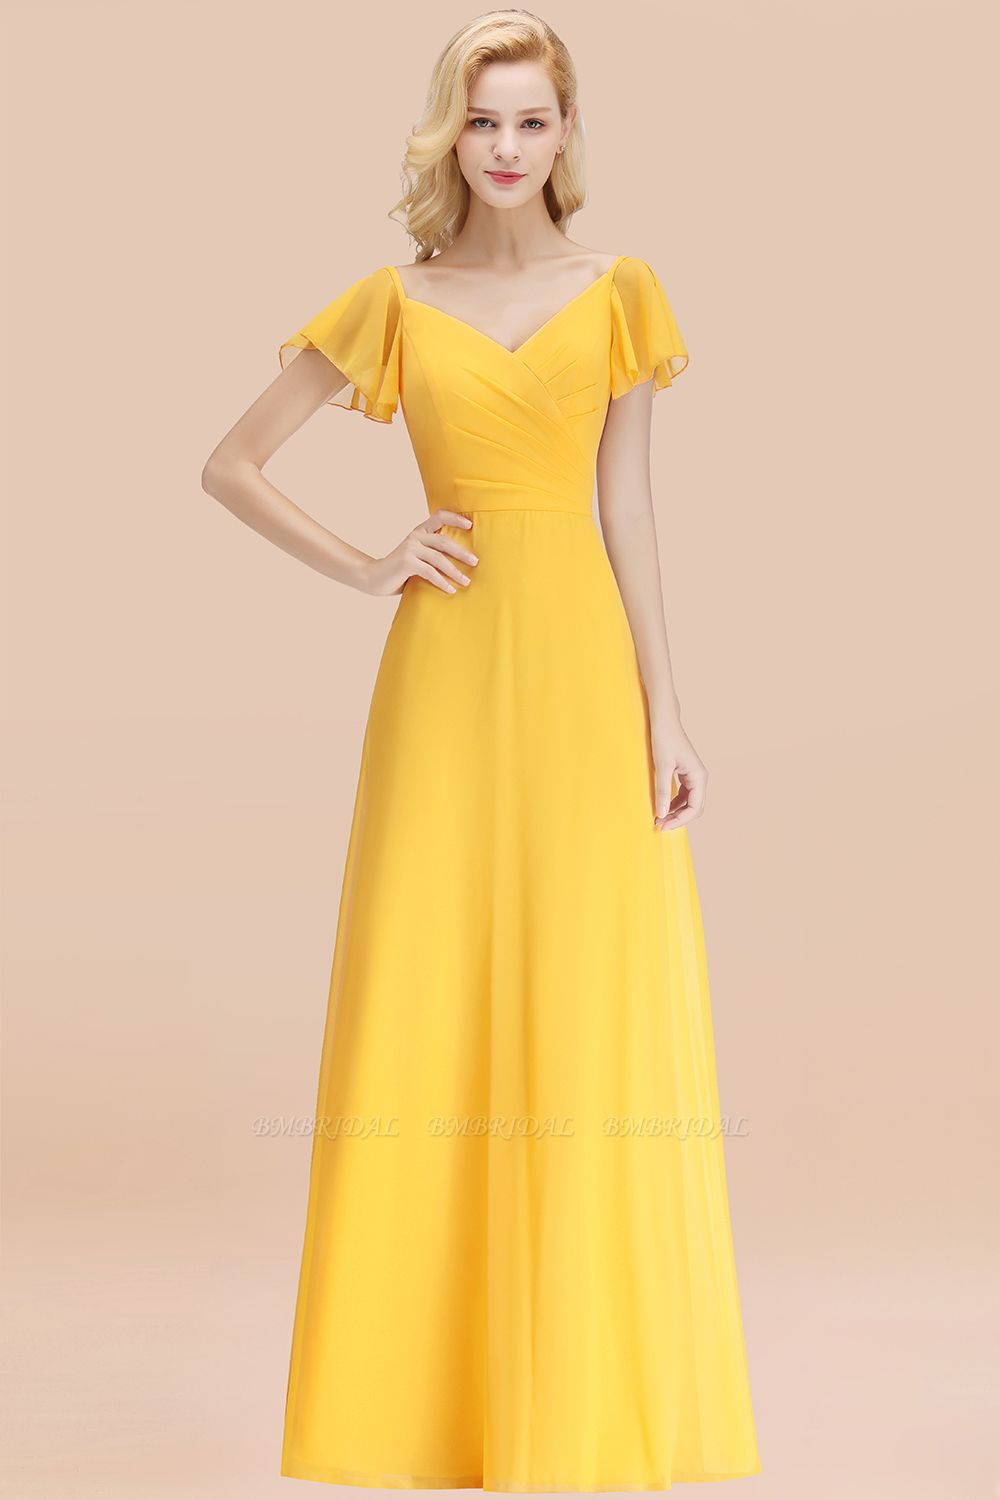 Elegent Short-Sleeve Long Bridesmaid Dress Online Yellow Chiffon Wedding Party Dress